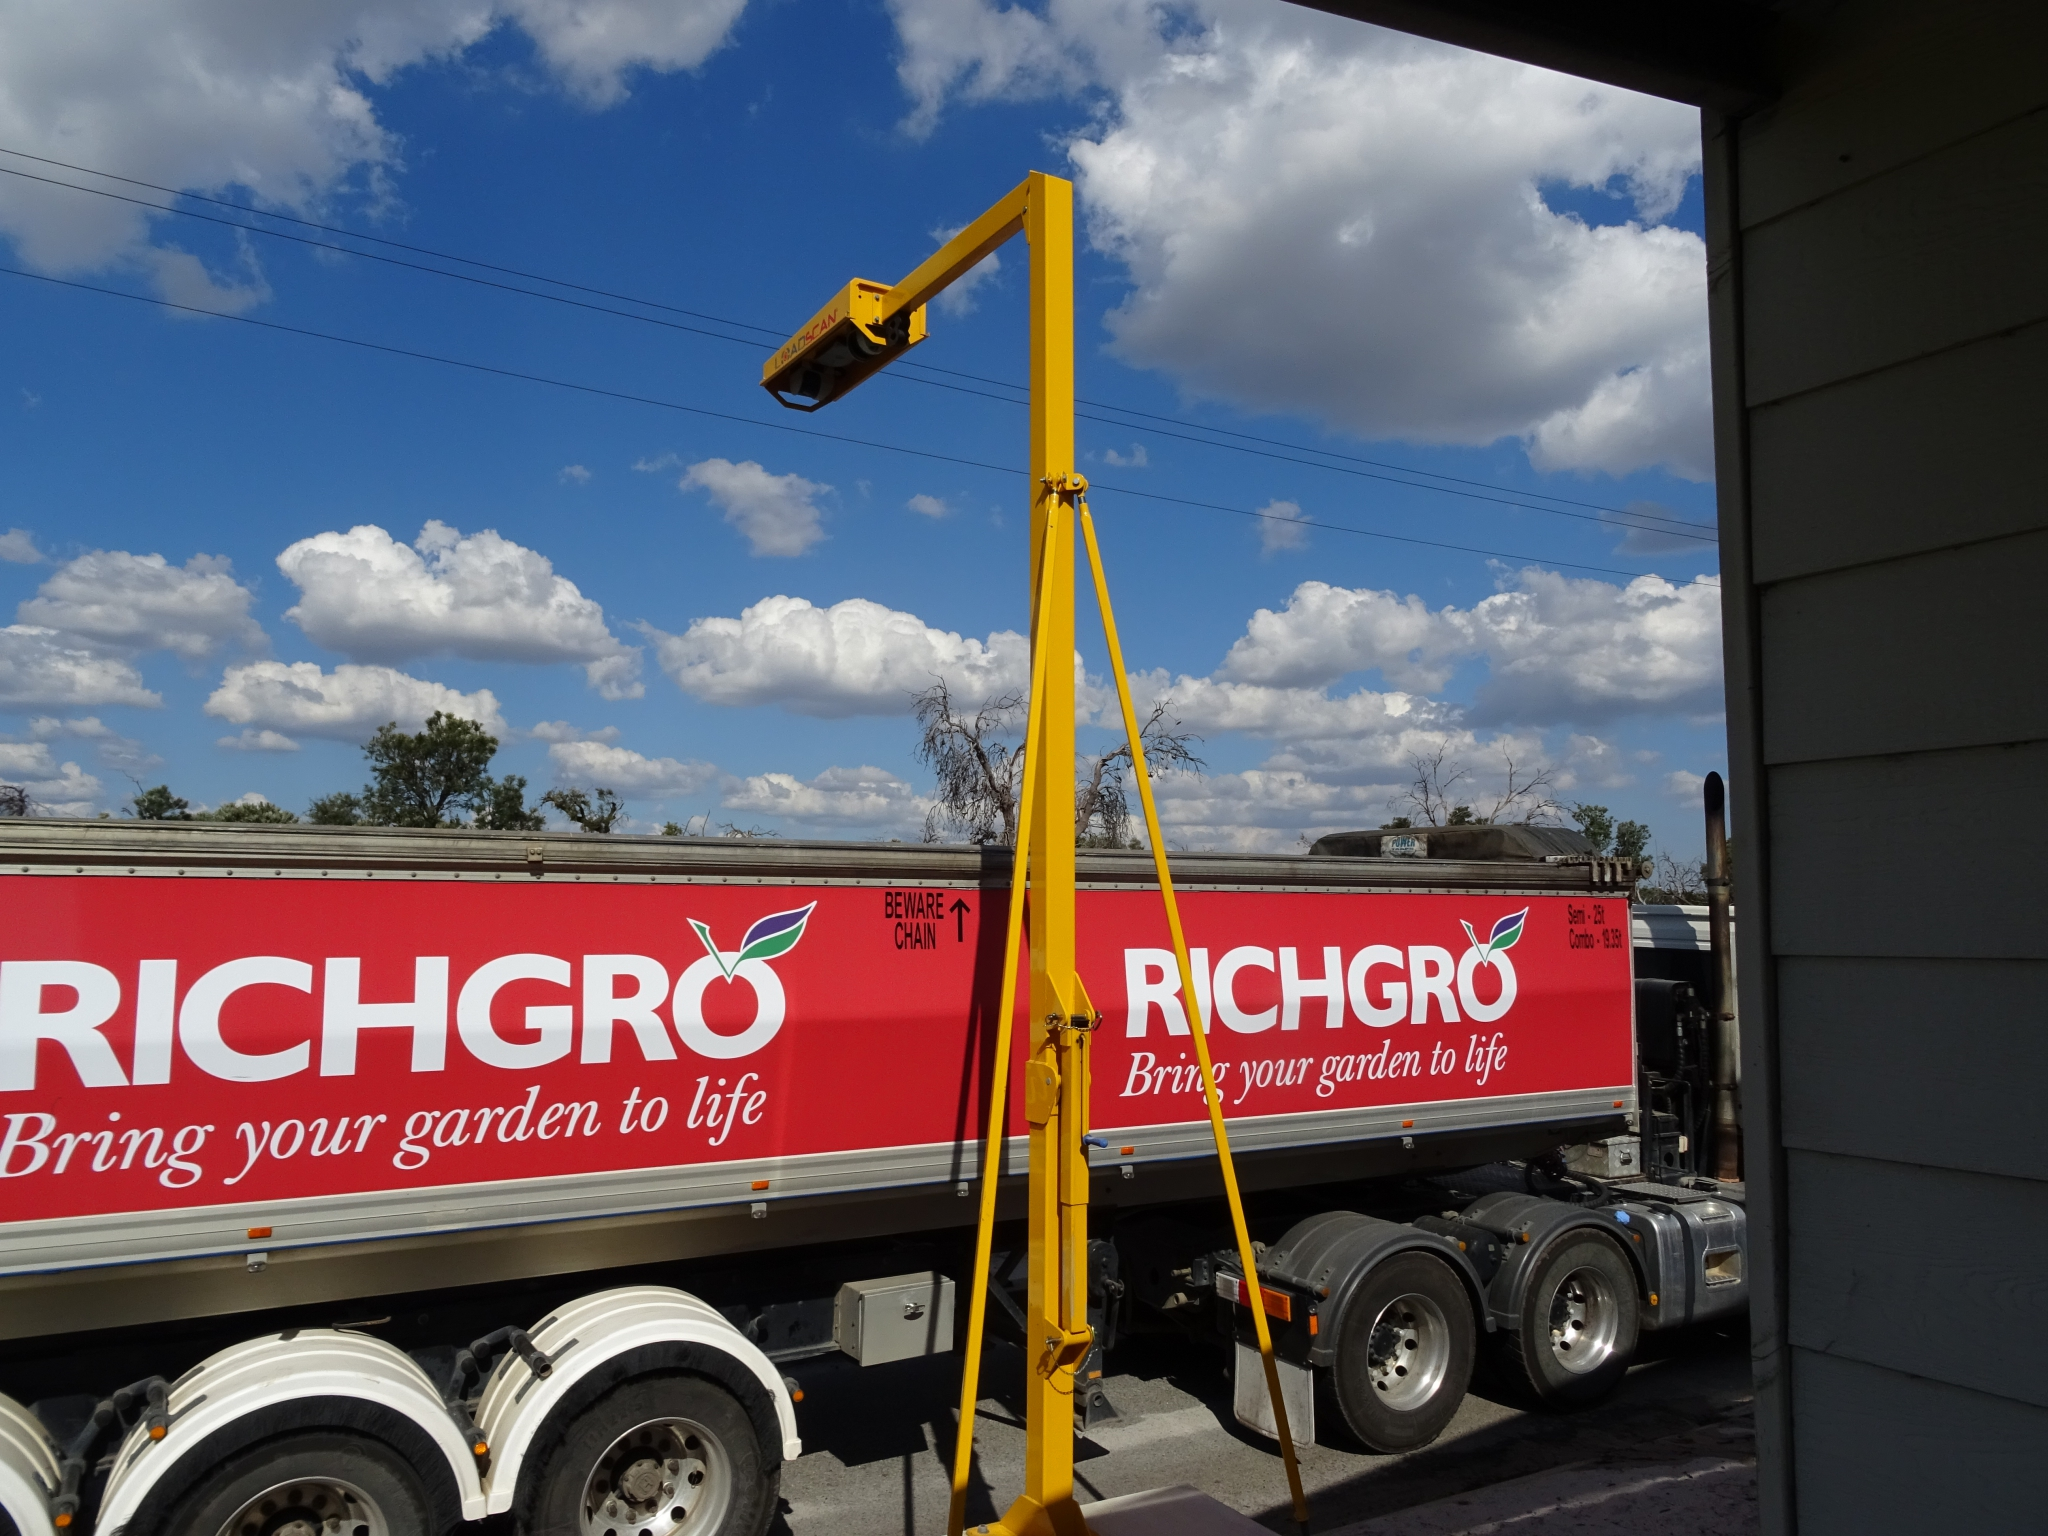 Rich Gro use Loadscan LVS unit